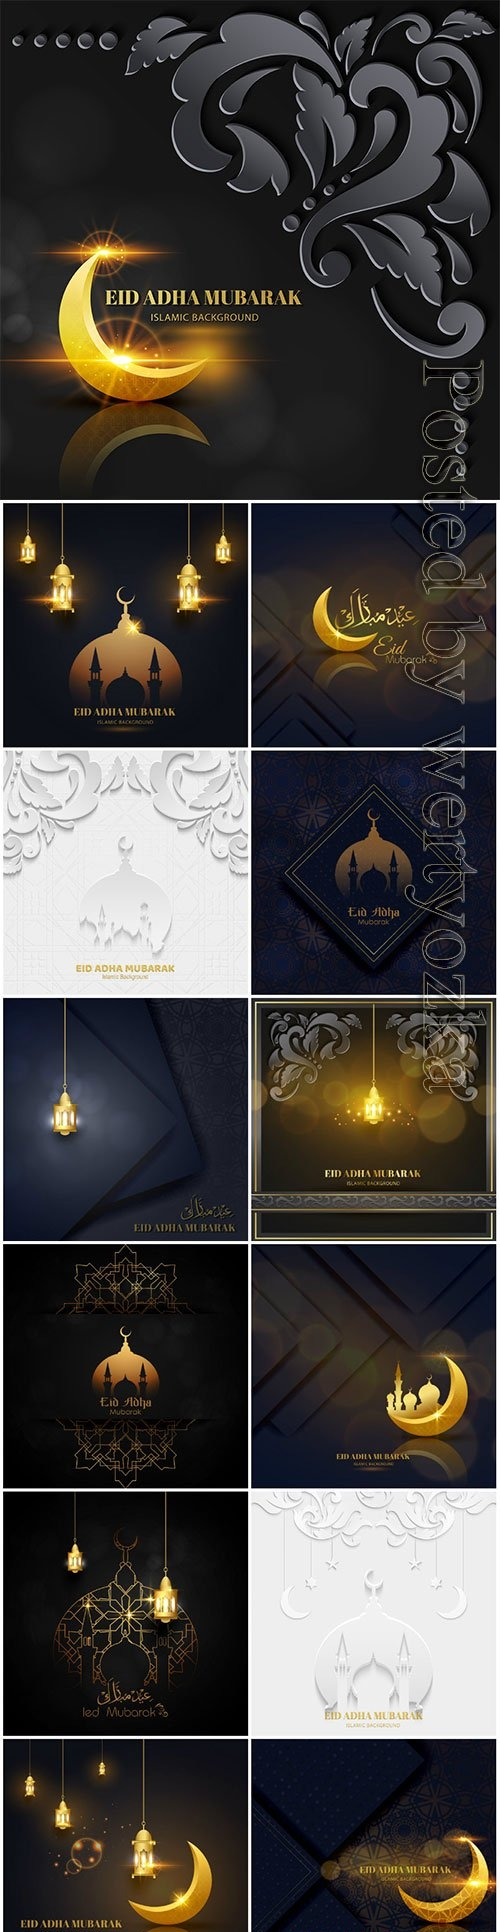 Eid mubarak beautiful greeting card black with islamic lantern premium vector